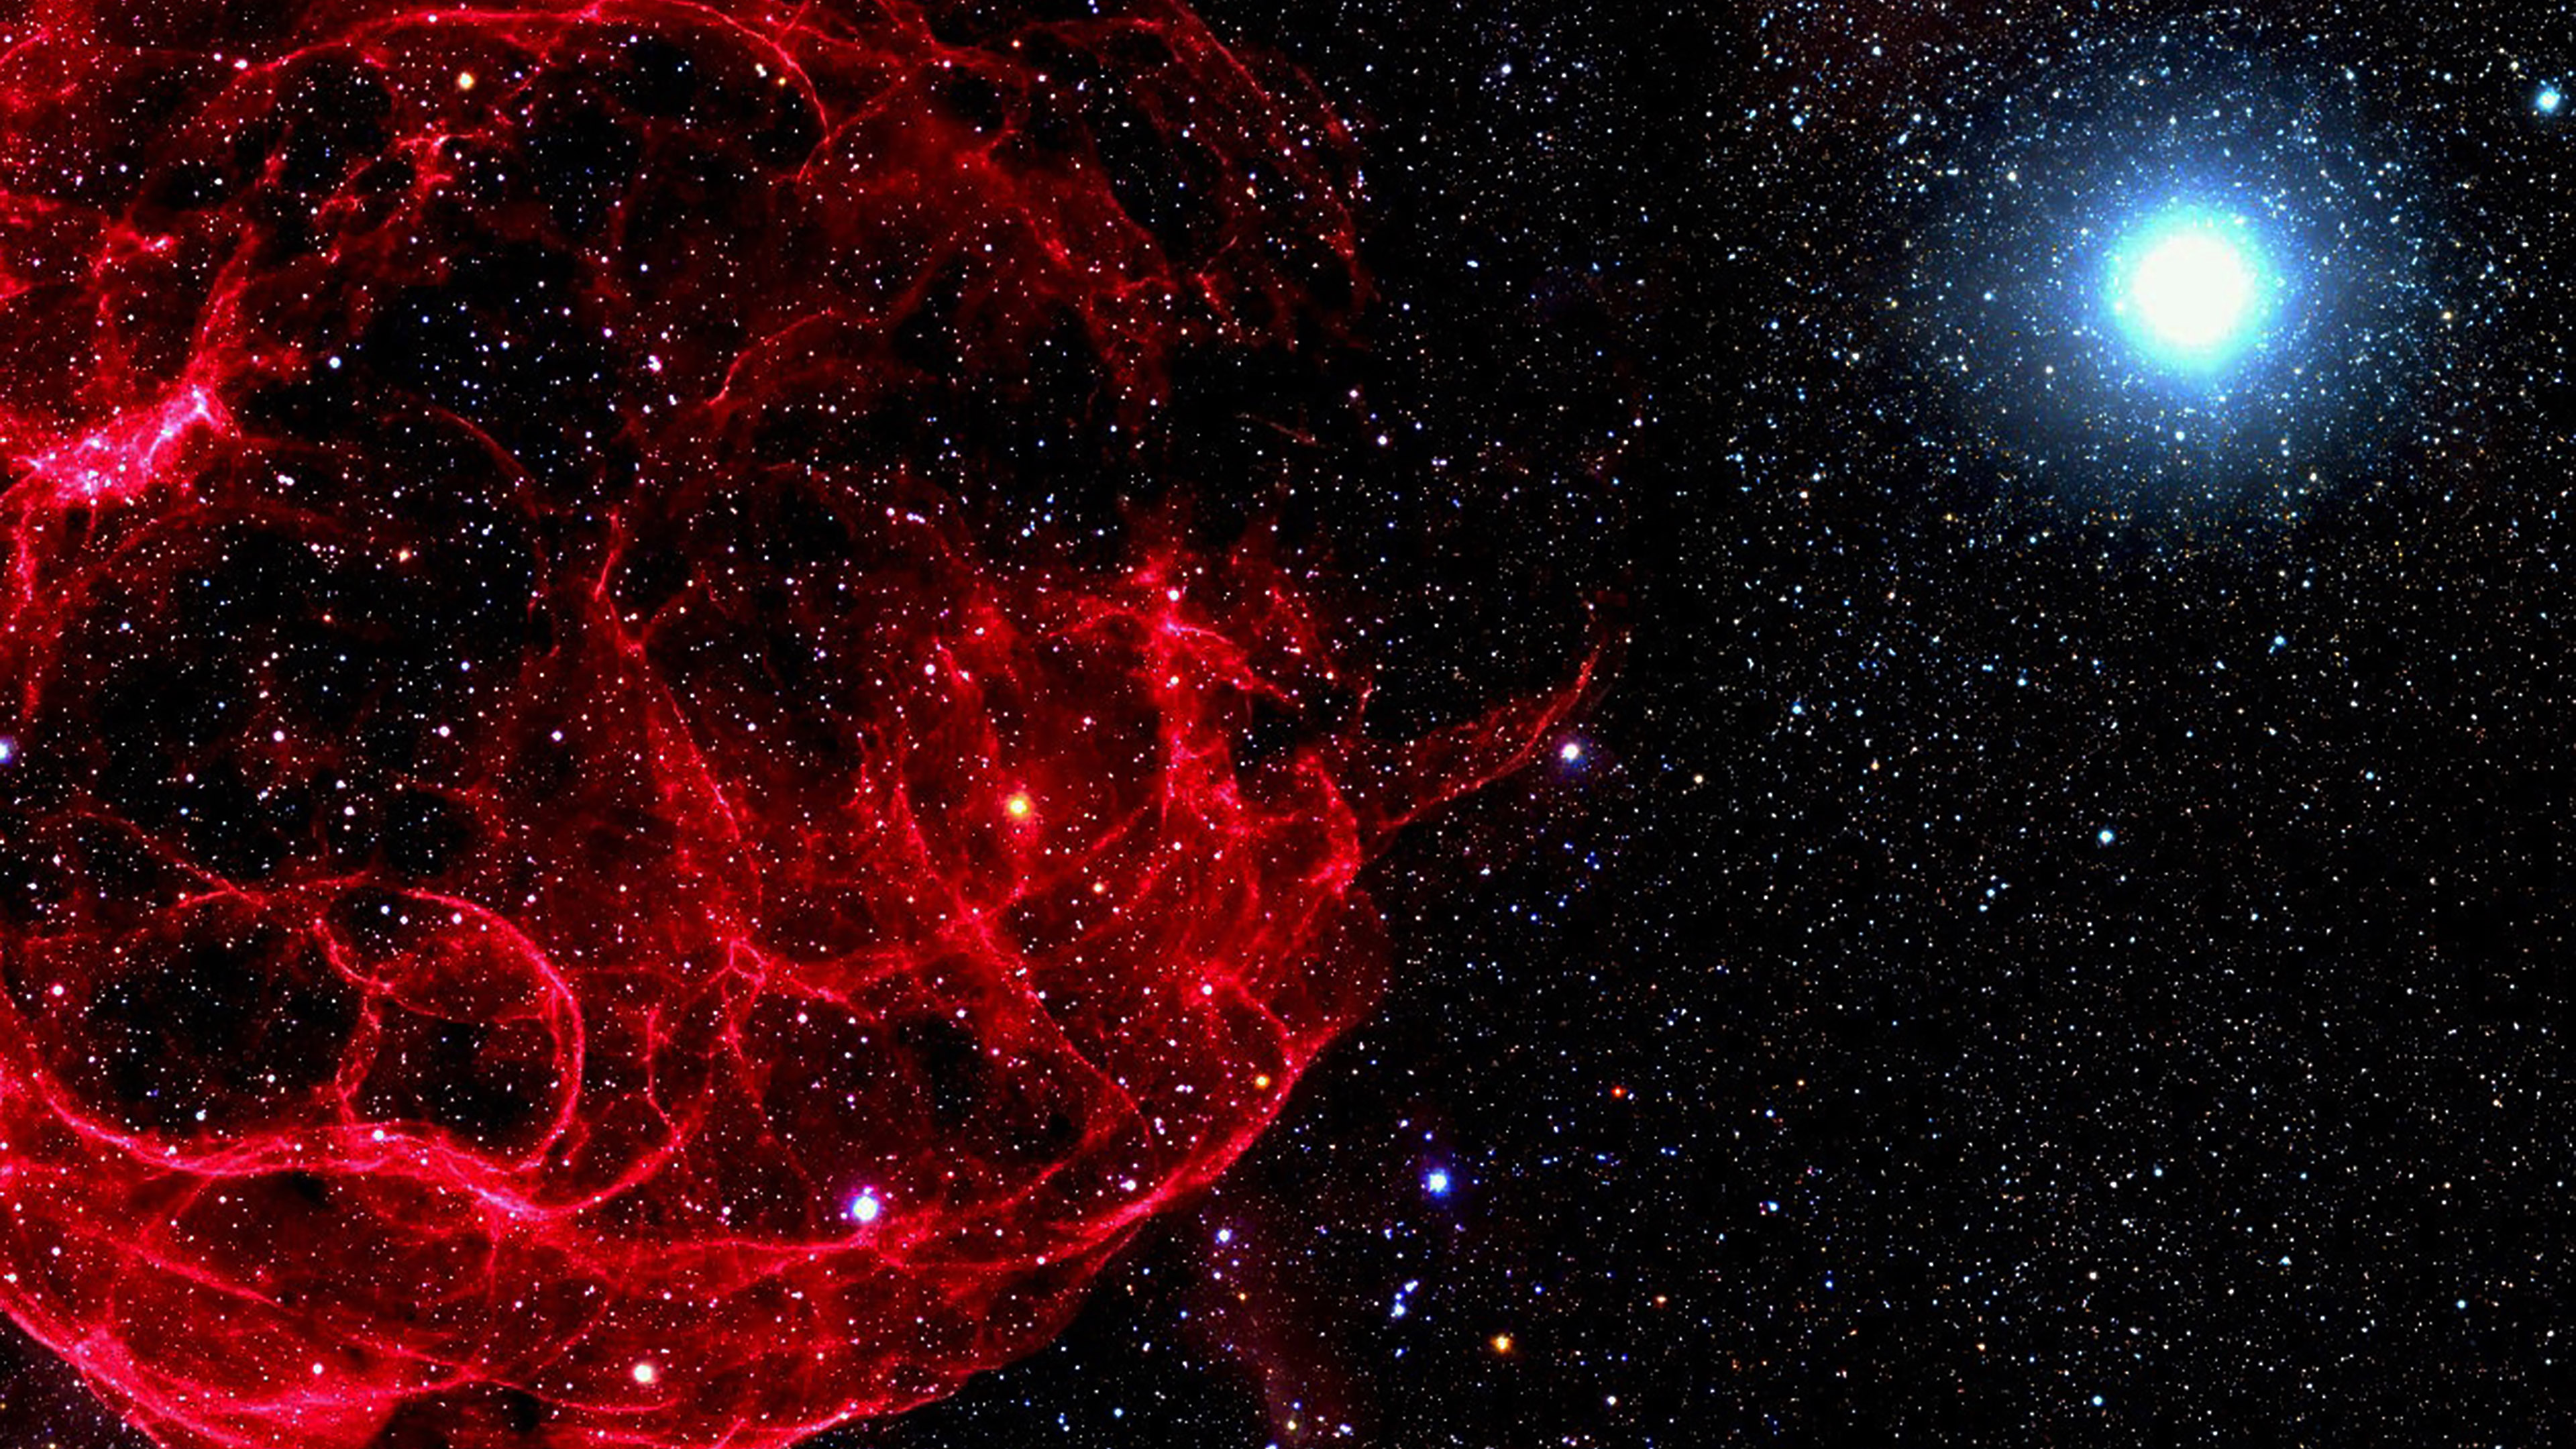 mn16-space-red-bigbang-star-art-nature - Papers.co